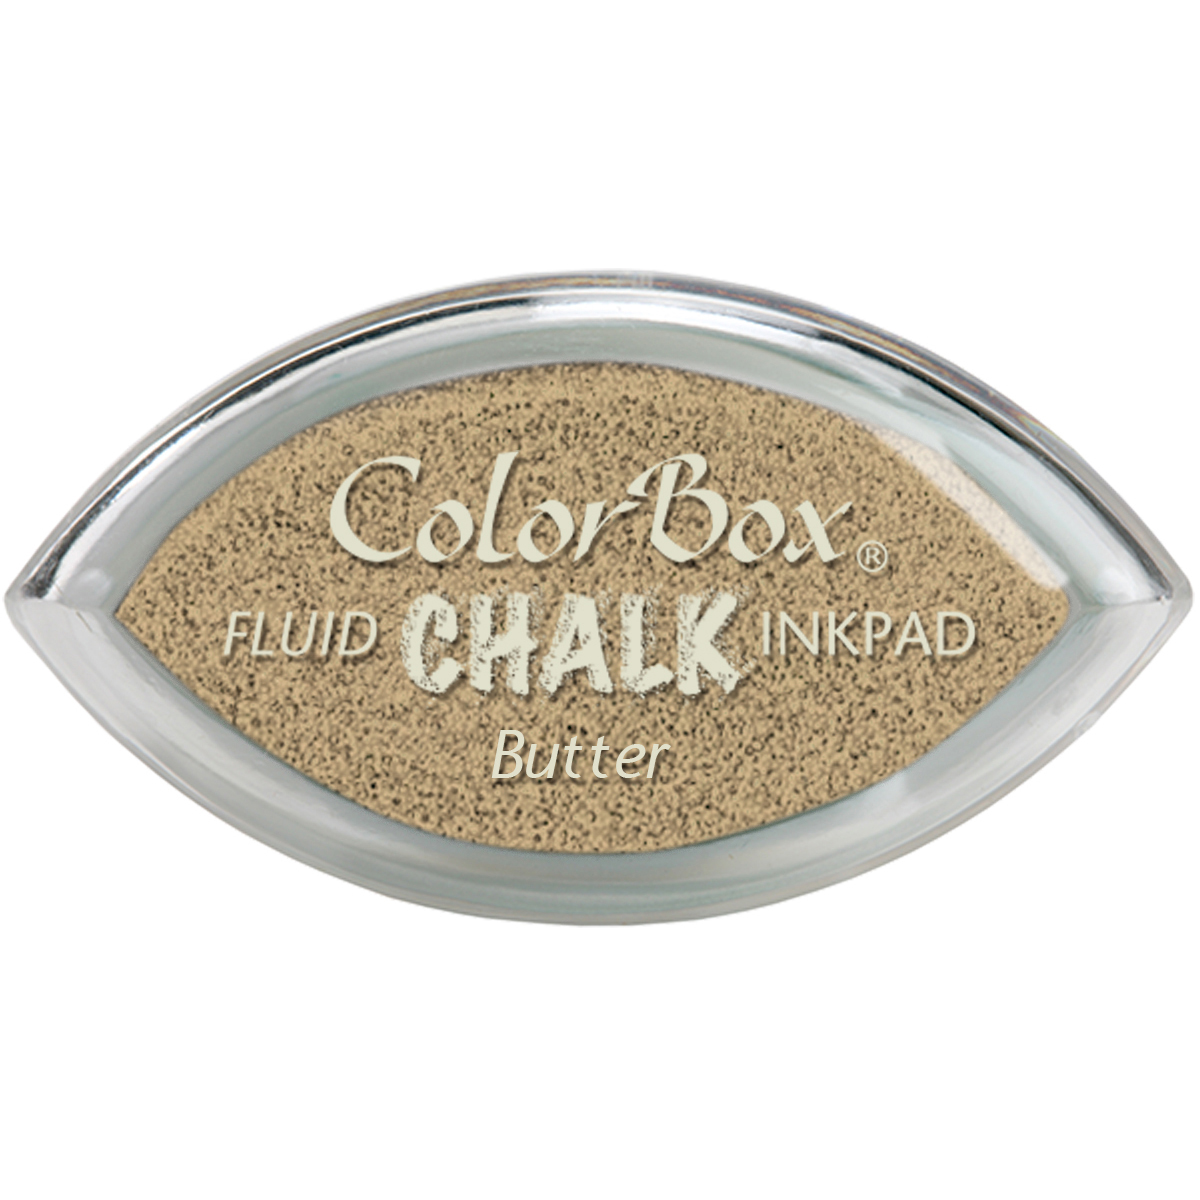 ColorBox Chalk Cat's Eye Ink Pad Butter